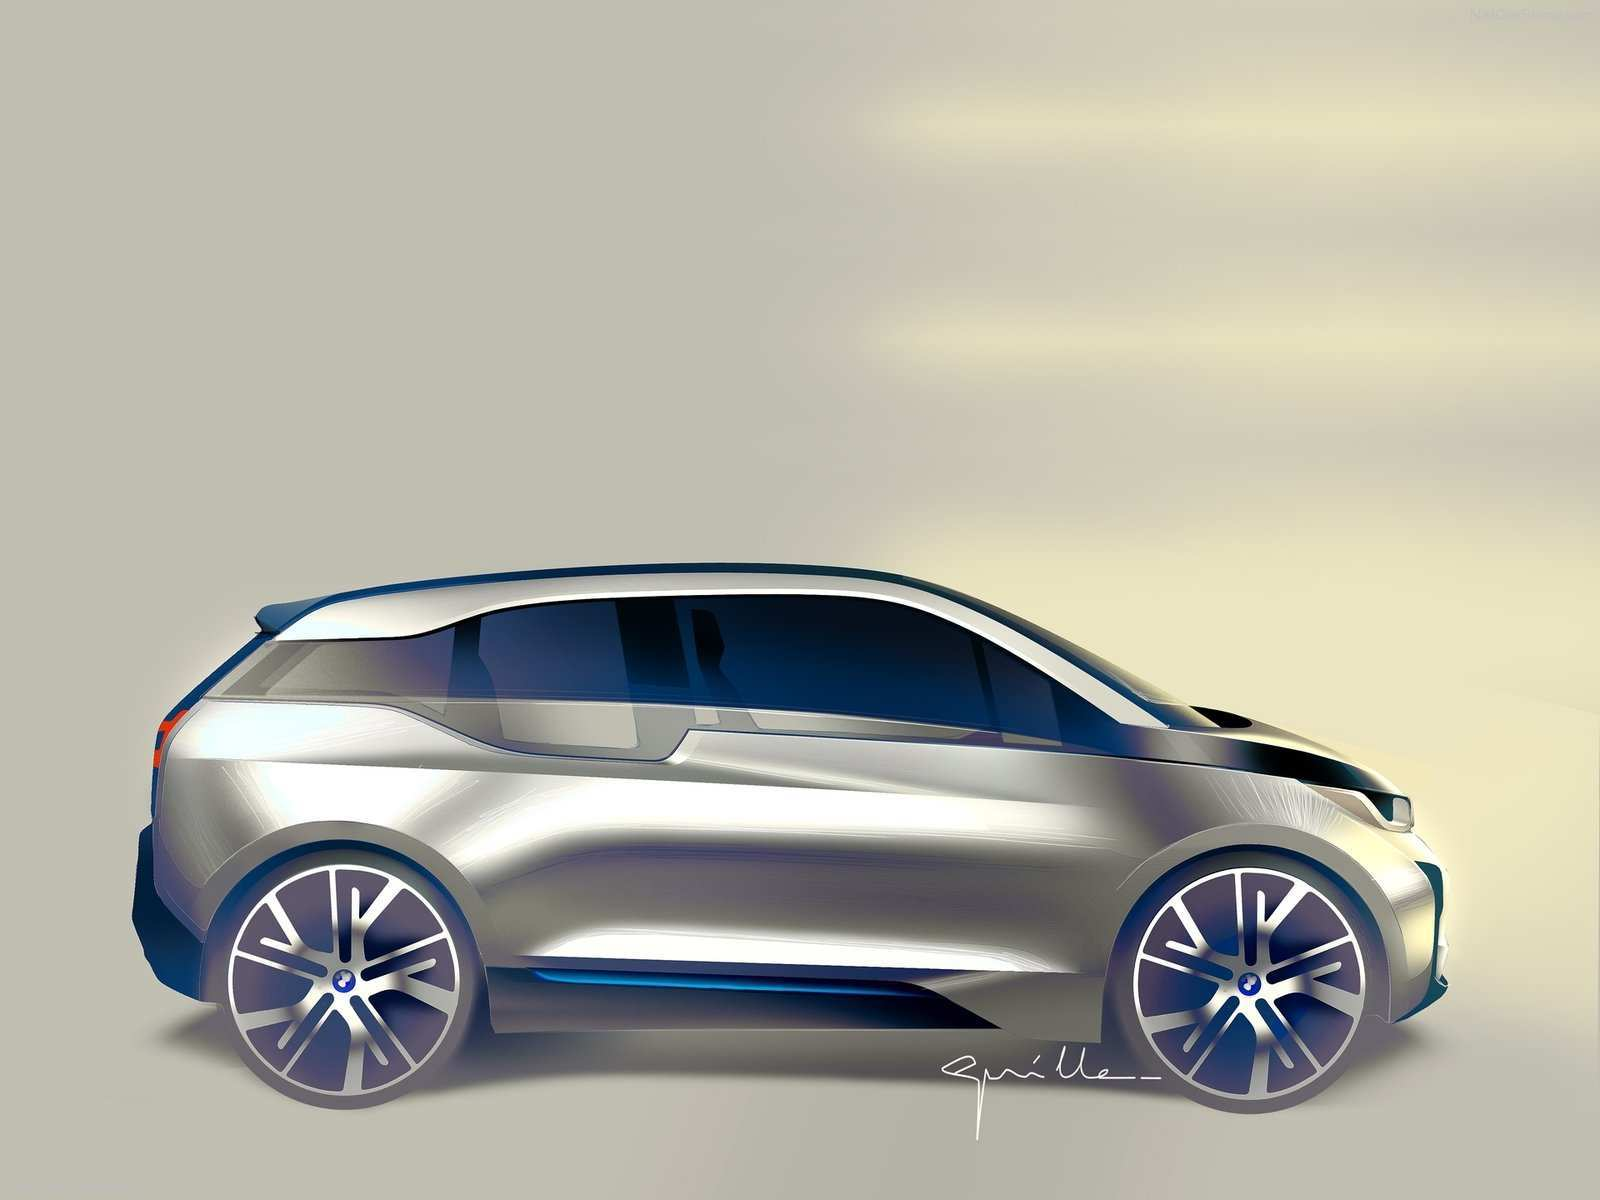 85 Concept of BMW Fuel Cell 2020 Pricing with BMW Fuel Cell 2020